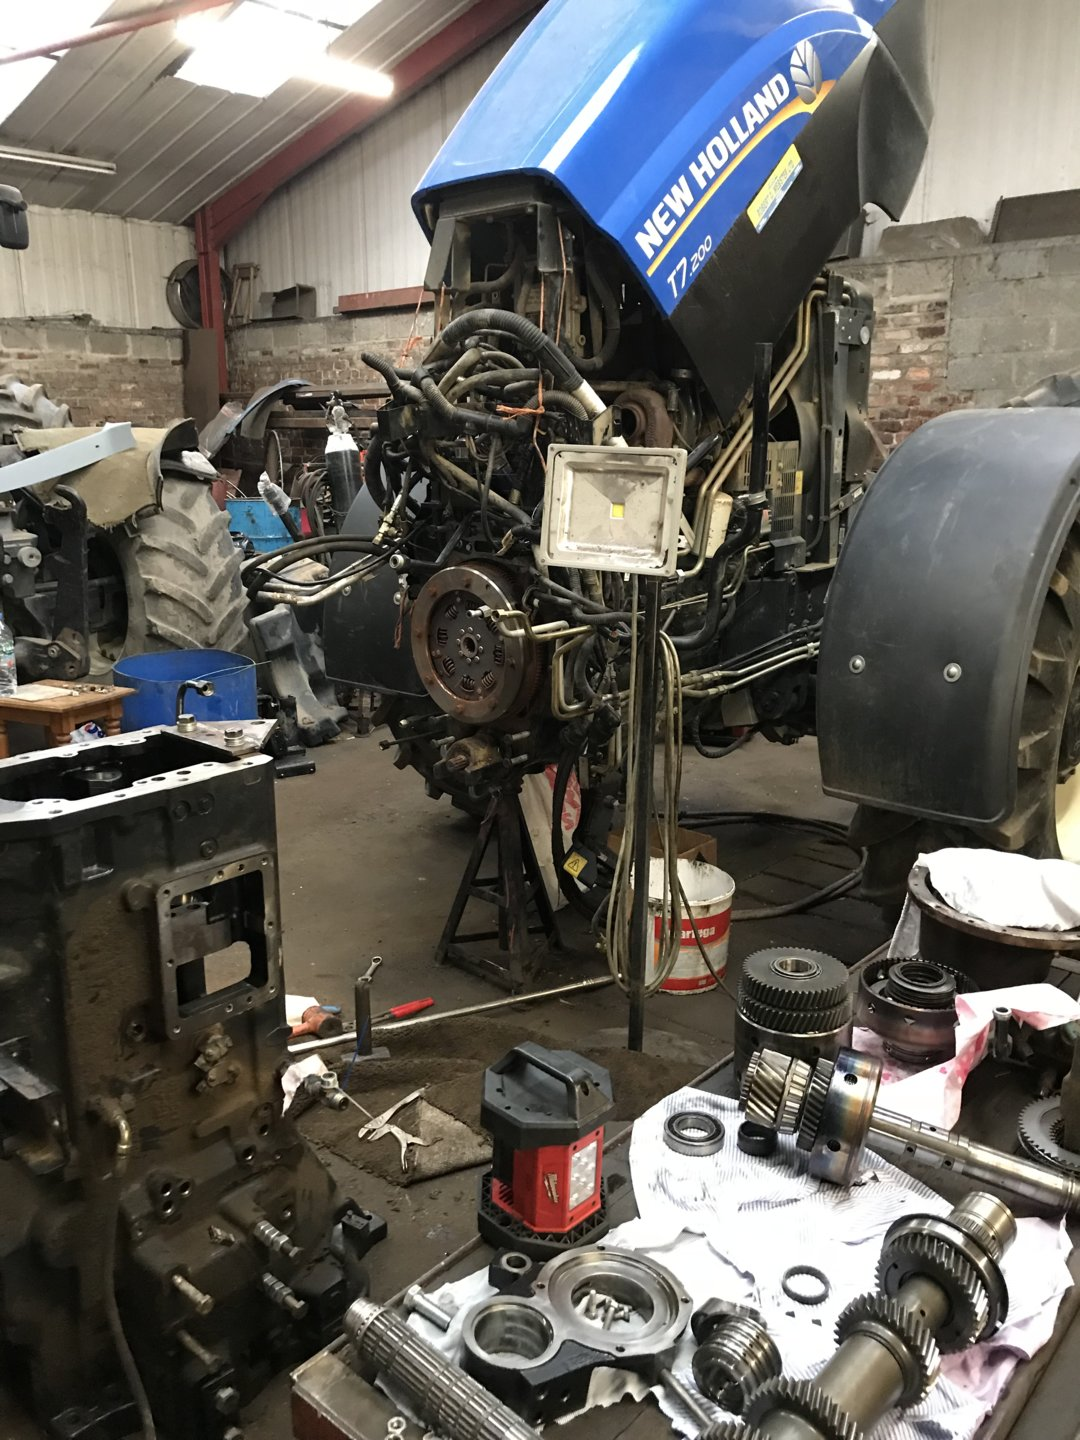 T7 200 gearbox problems | The Farming Forum